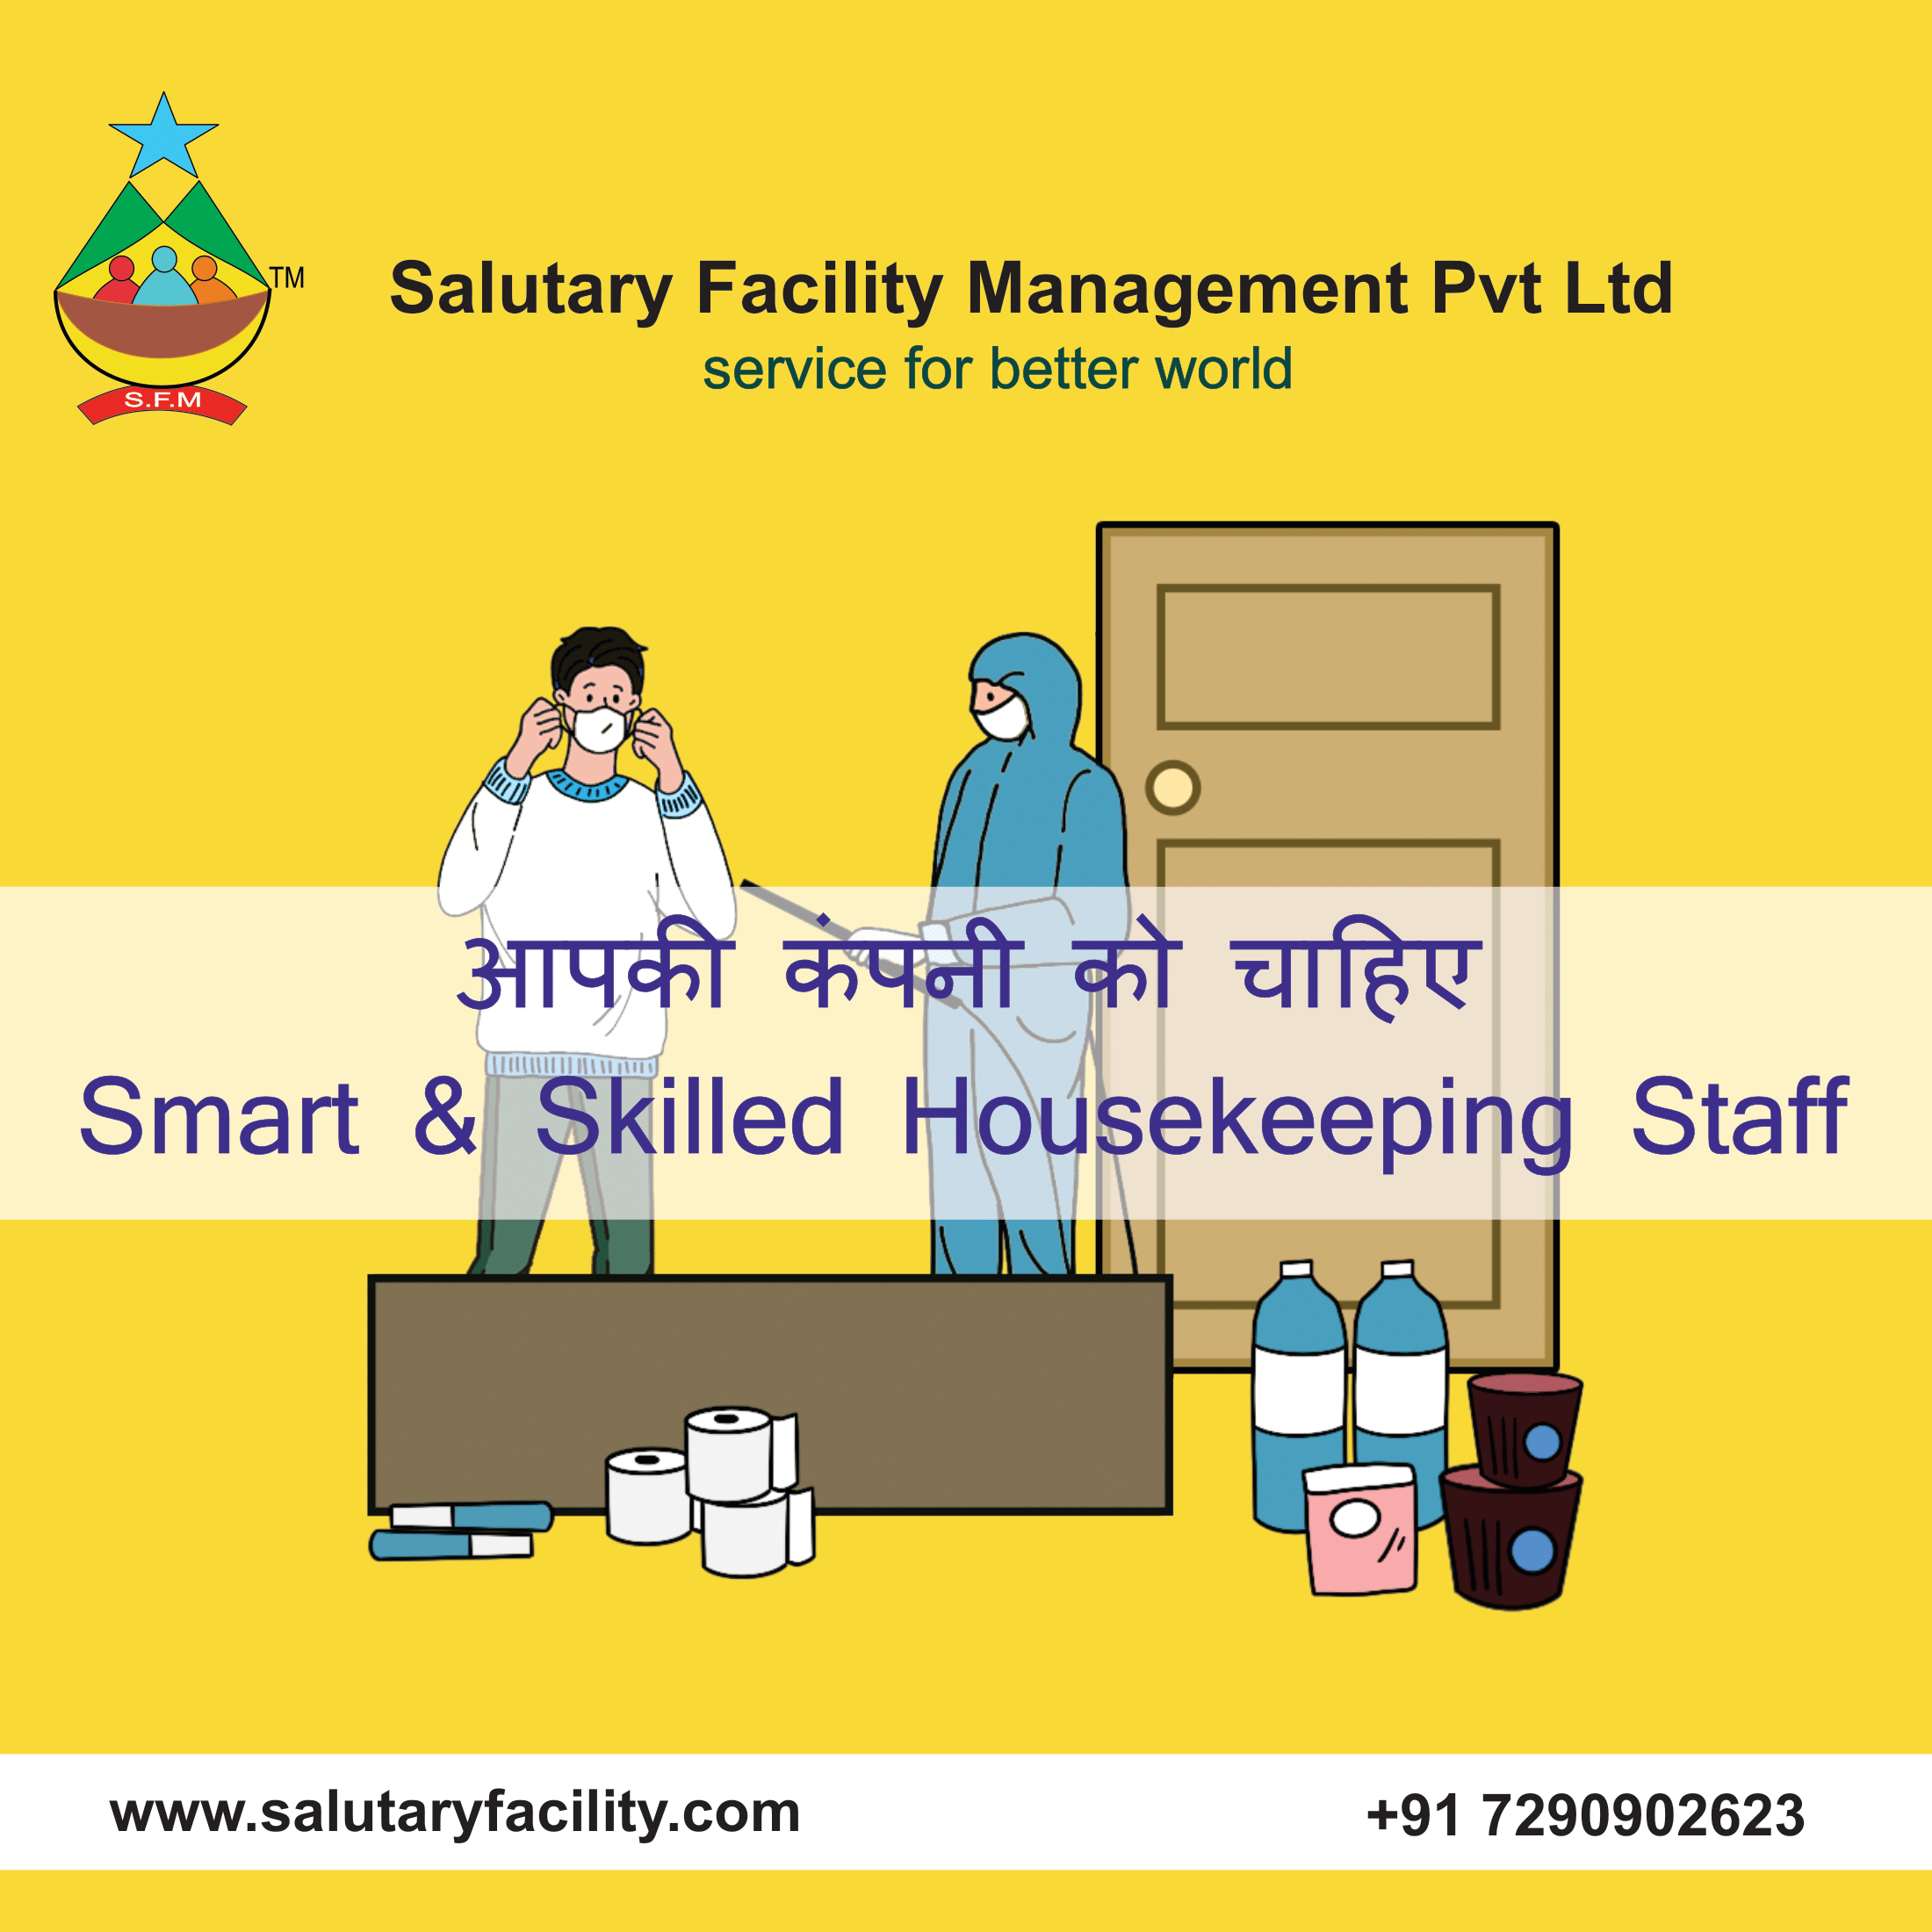 salutary facility management pvt ltd